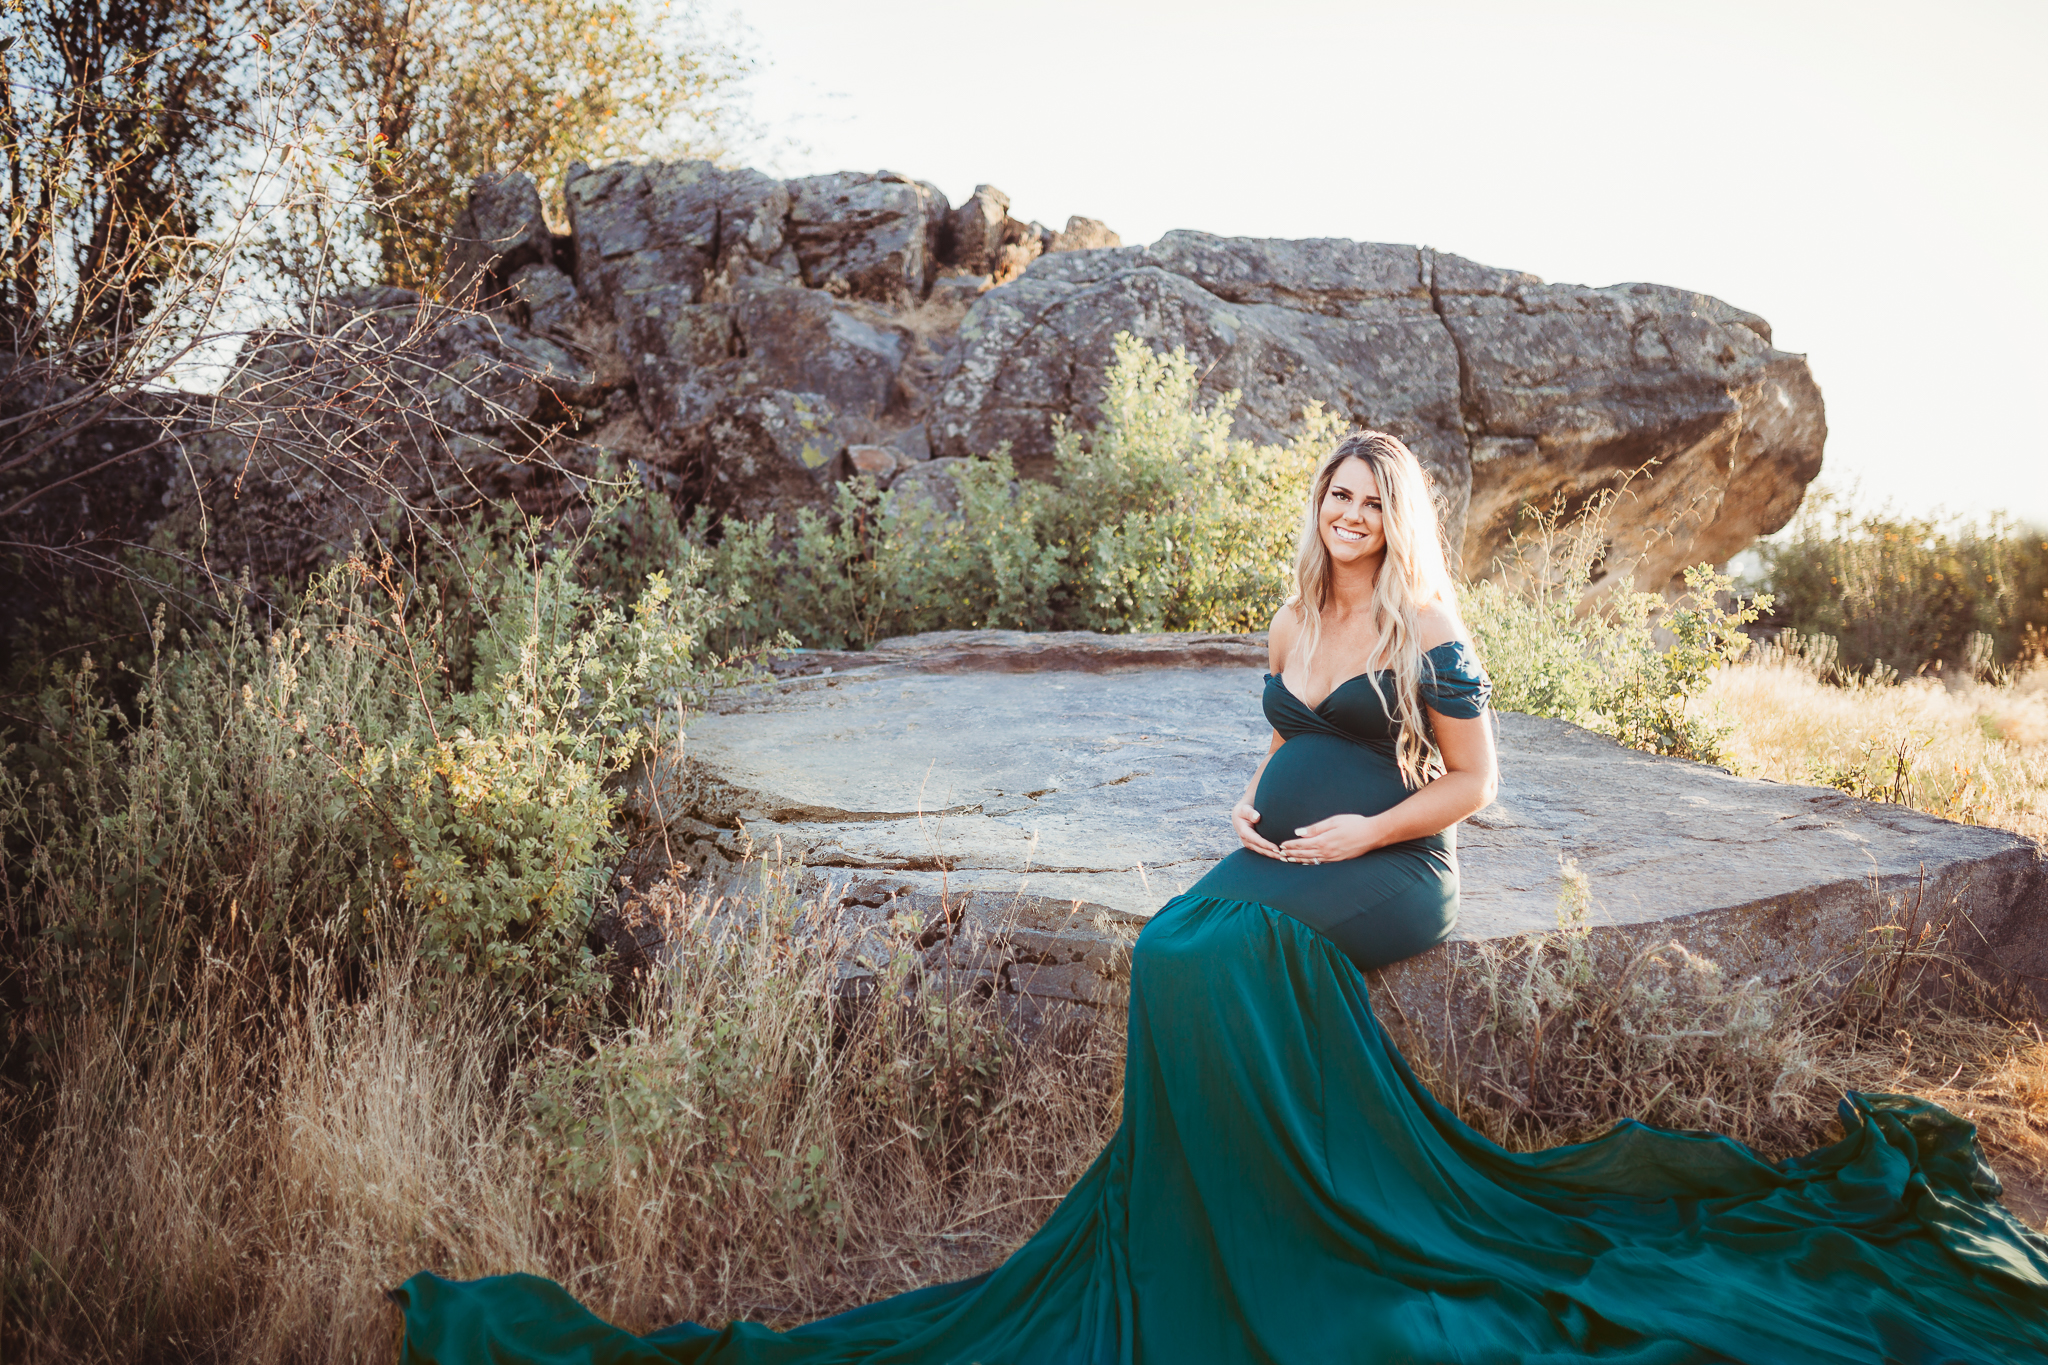 Green Monroe gown - Item has matching attachable sleevesFits sizes 2-14